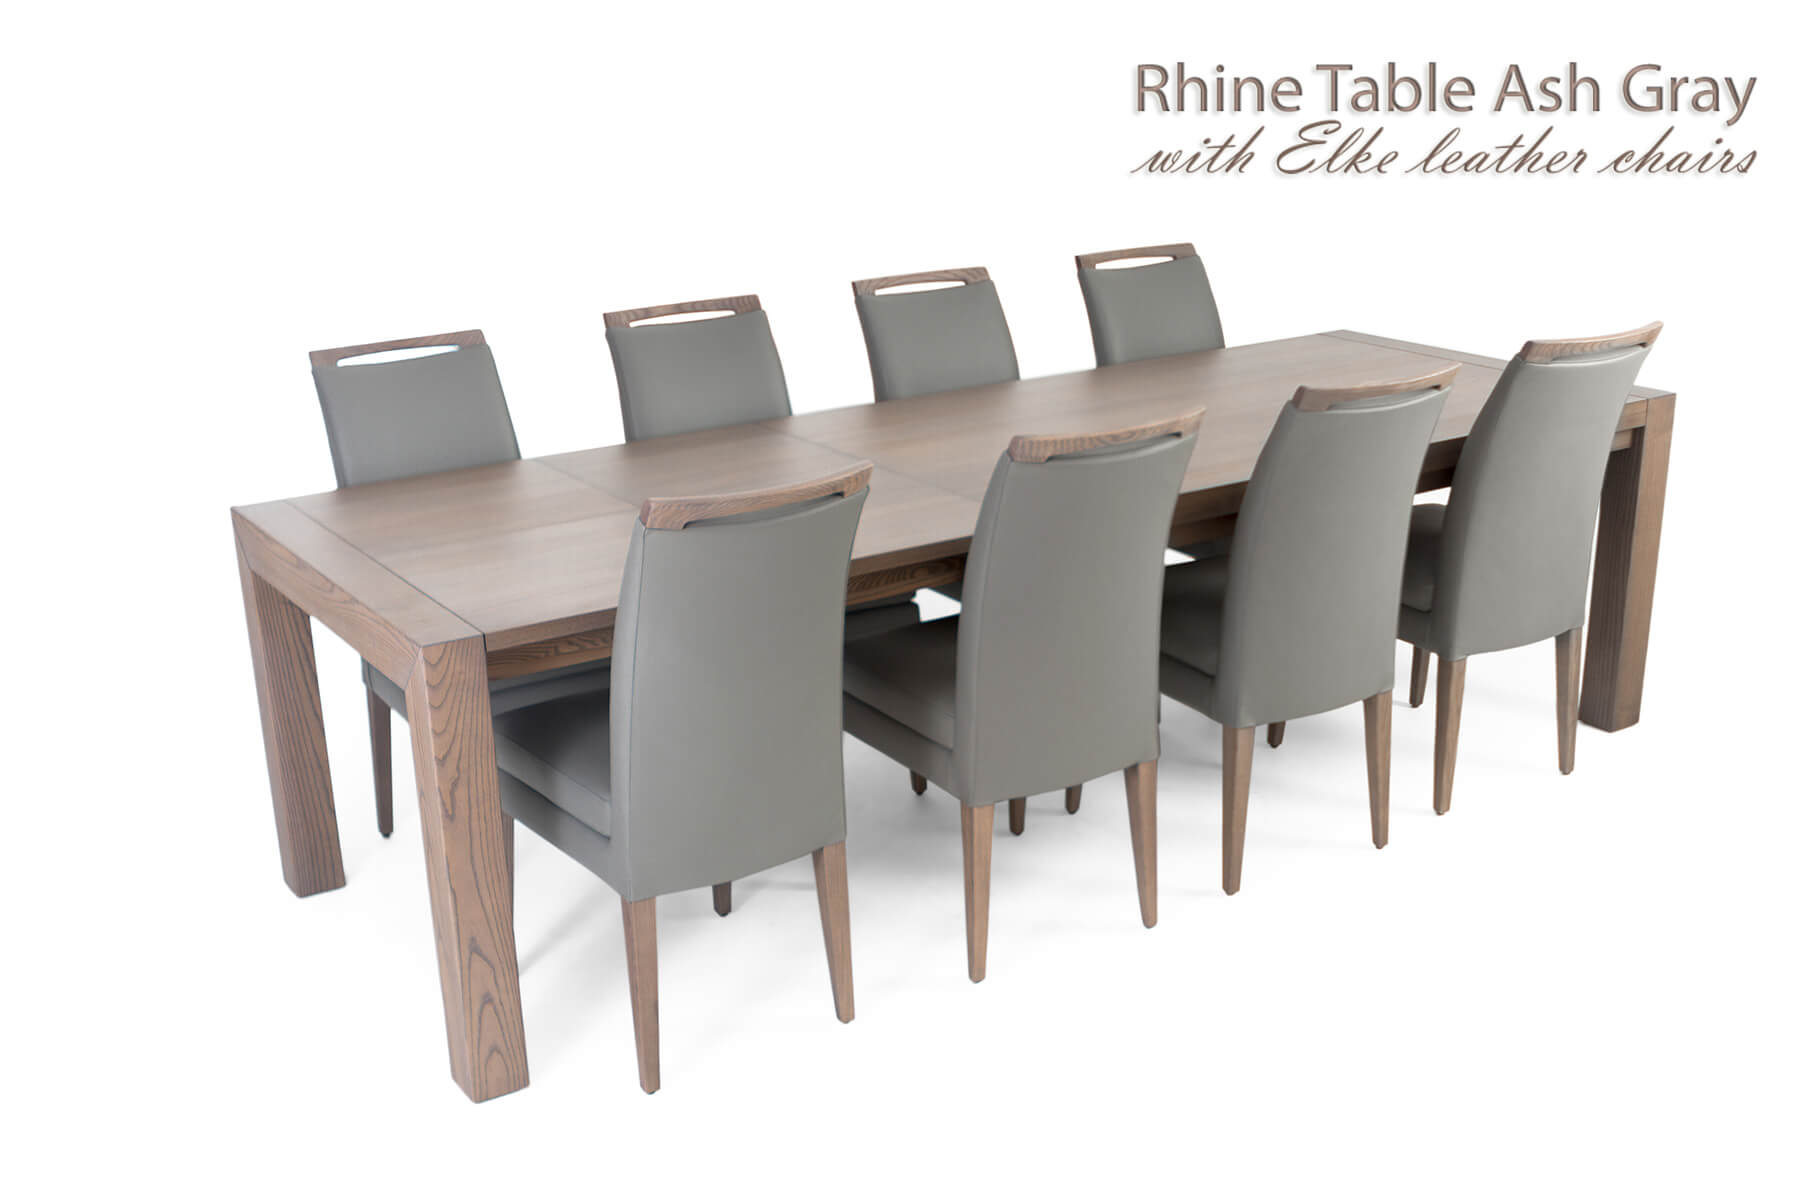 Rhine Ash Gray Table with Elke Leather Chairs, Cheap